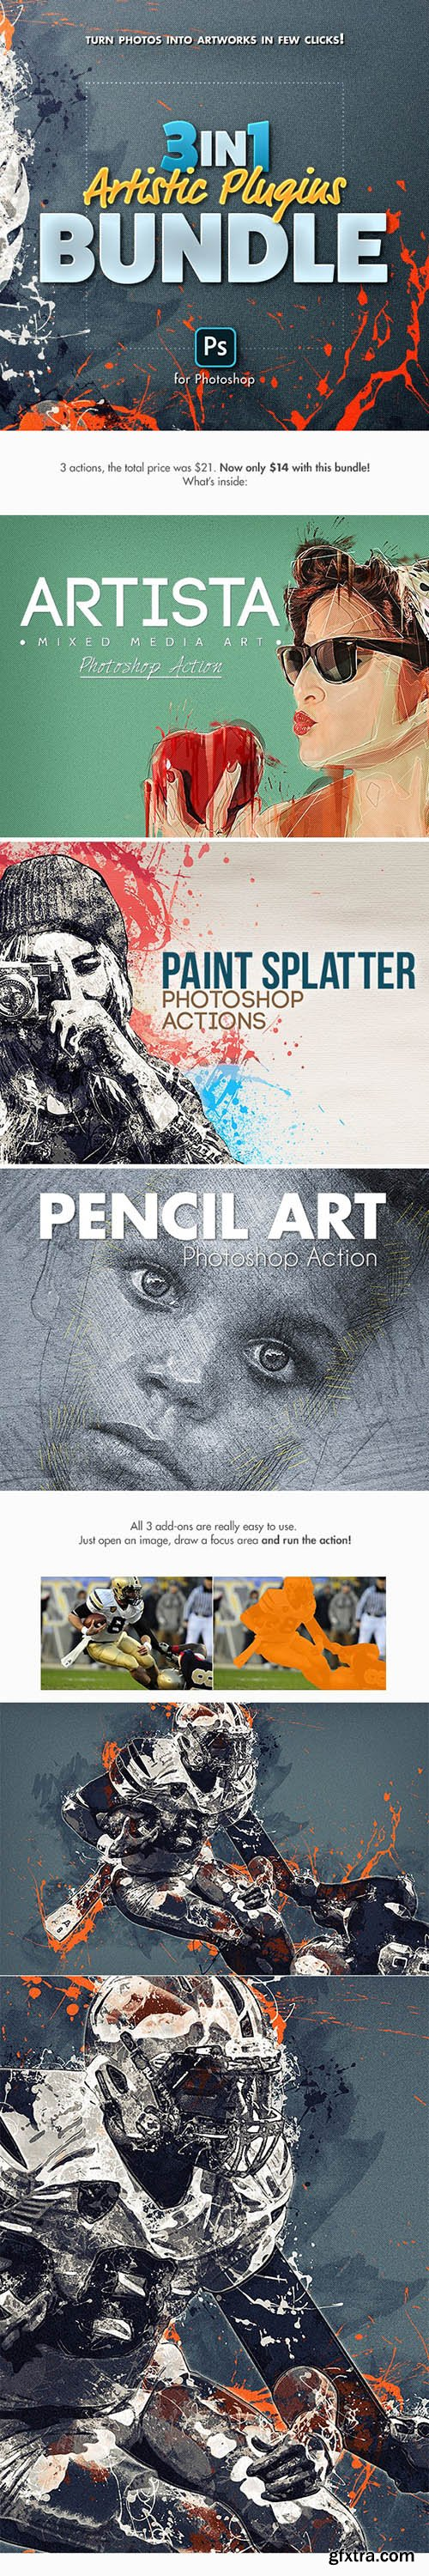 Graphicriver - 3in1 Artistic Plugins Bundle for Photoshop 25516747